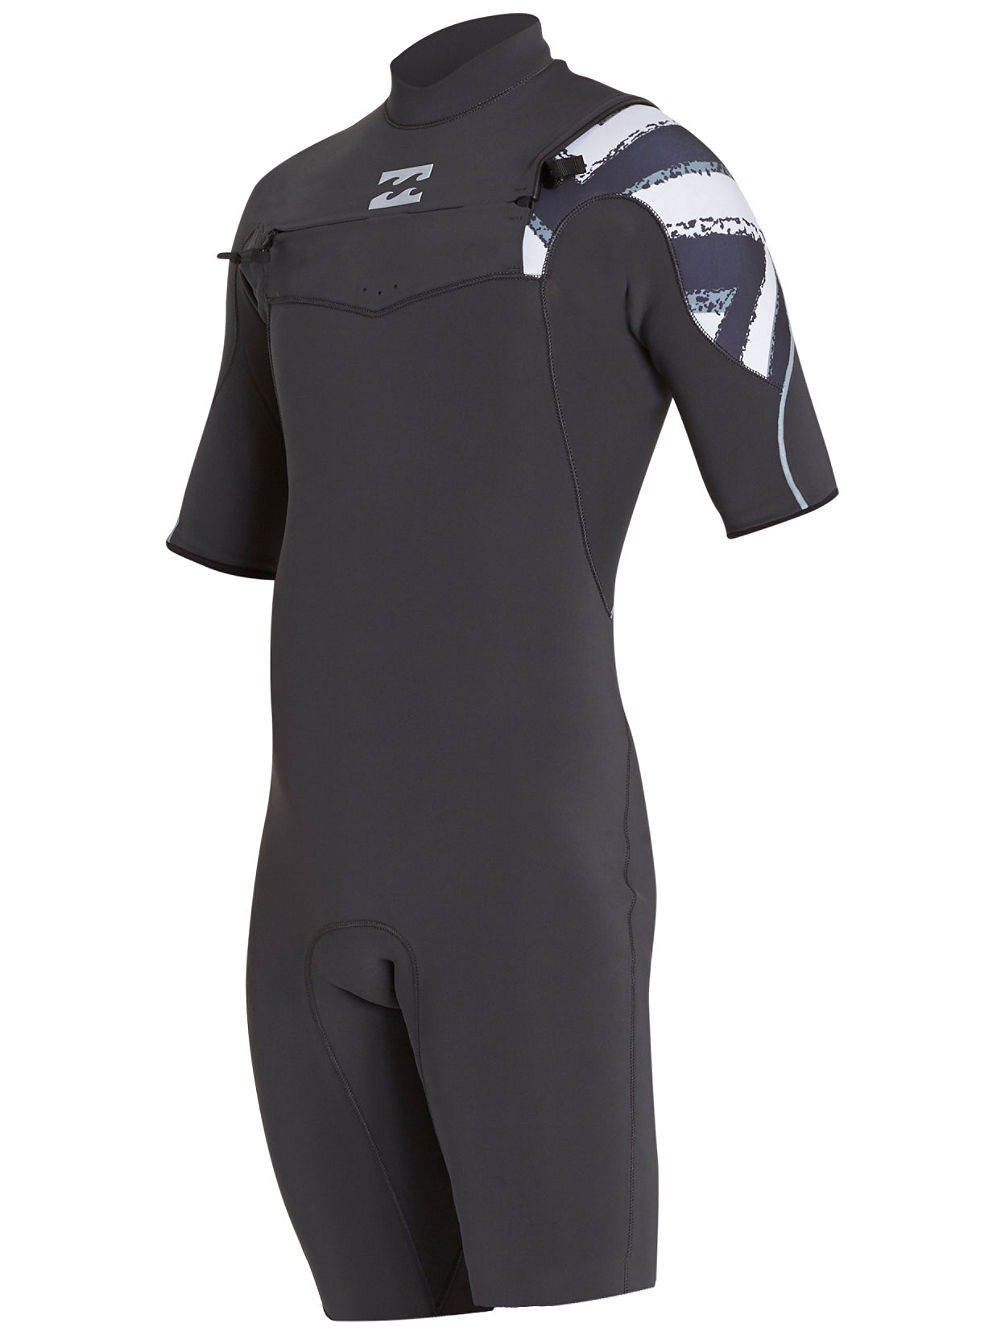 2/2 Pro Chest Zip Spring Wetsuit